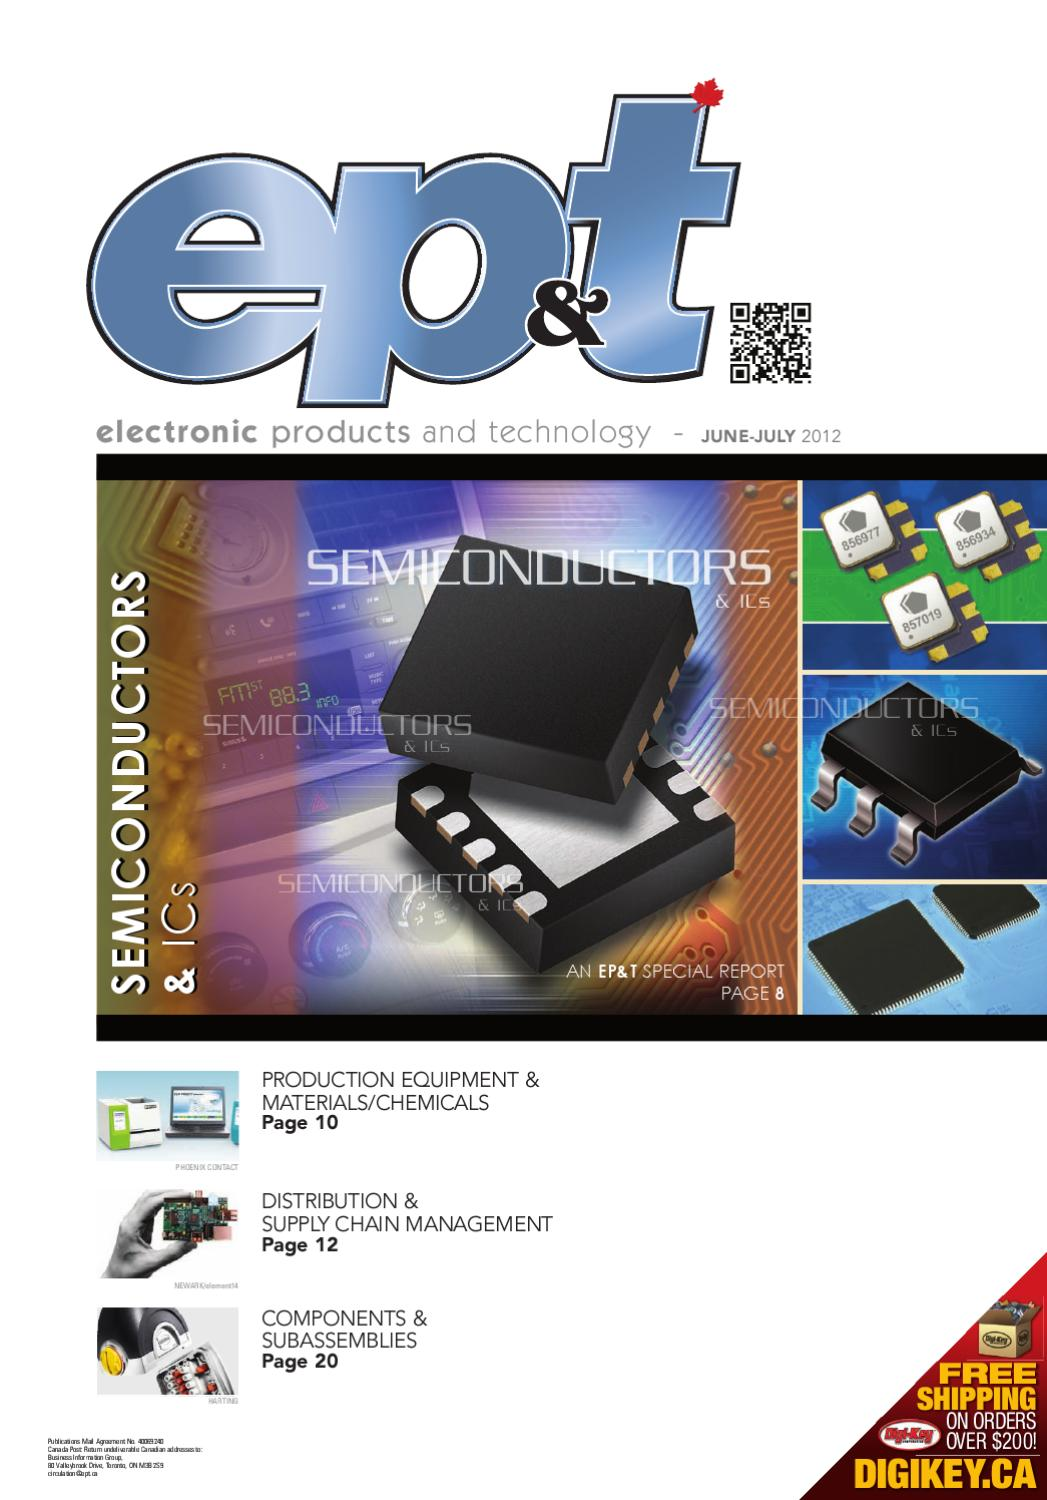 Electronic Products and Technology June/July 2012 by Annex